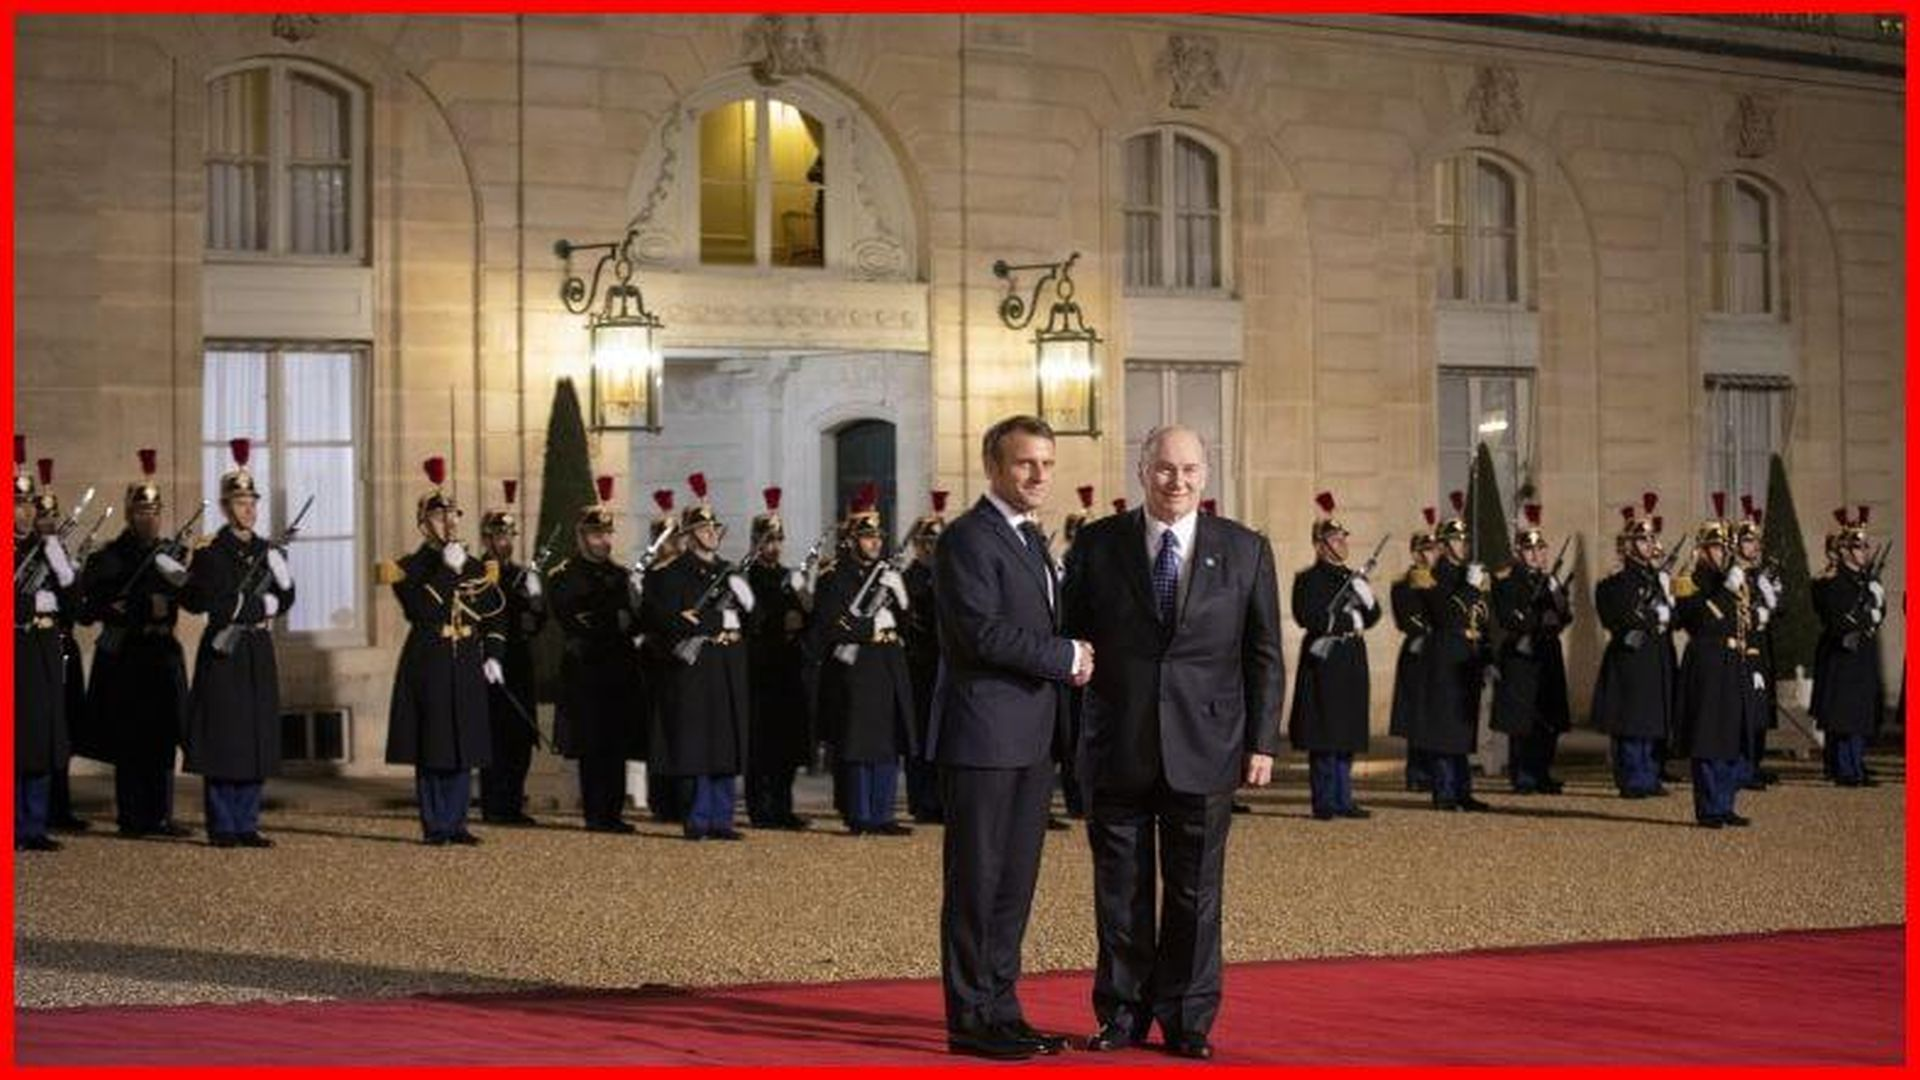 His Highness, the Aga Khan, is greeted on the eve of the Peace Forum in Paris by French President Emmanuel Macron at the Elysee Palace. AKDN / Cécile Genest